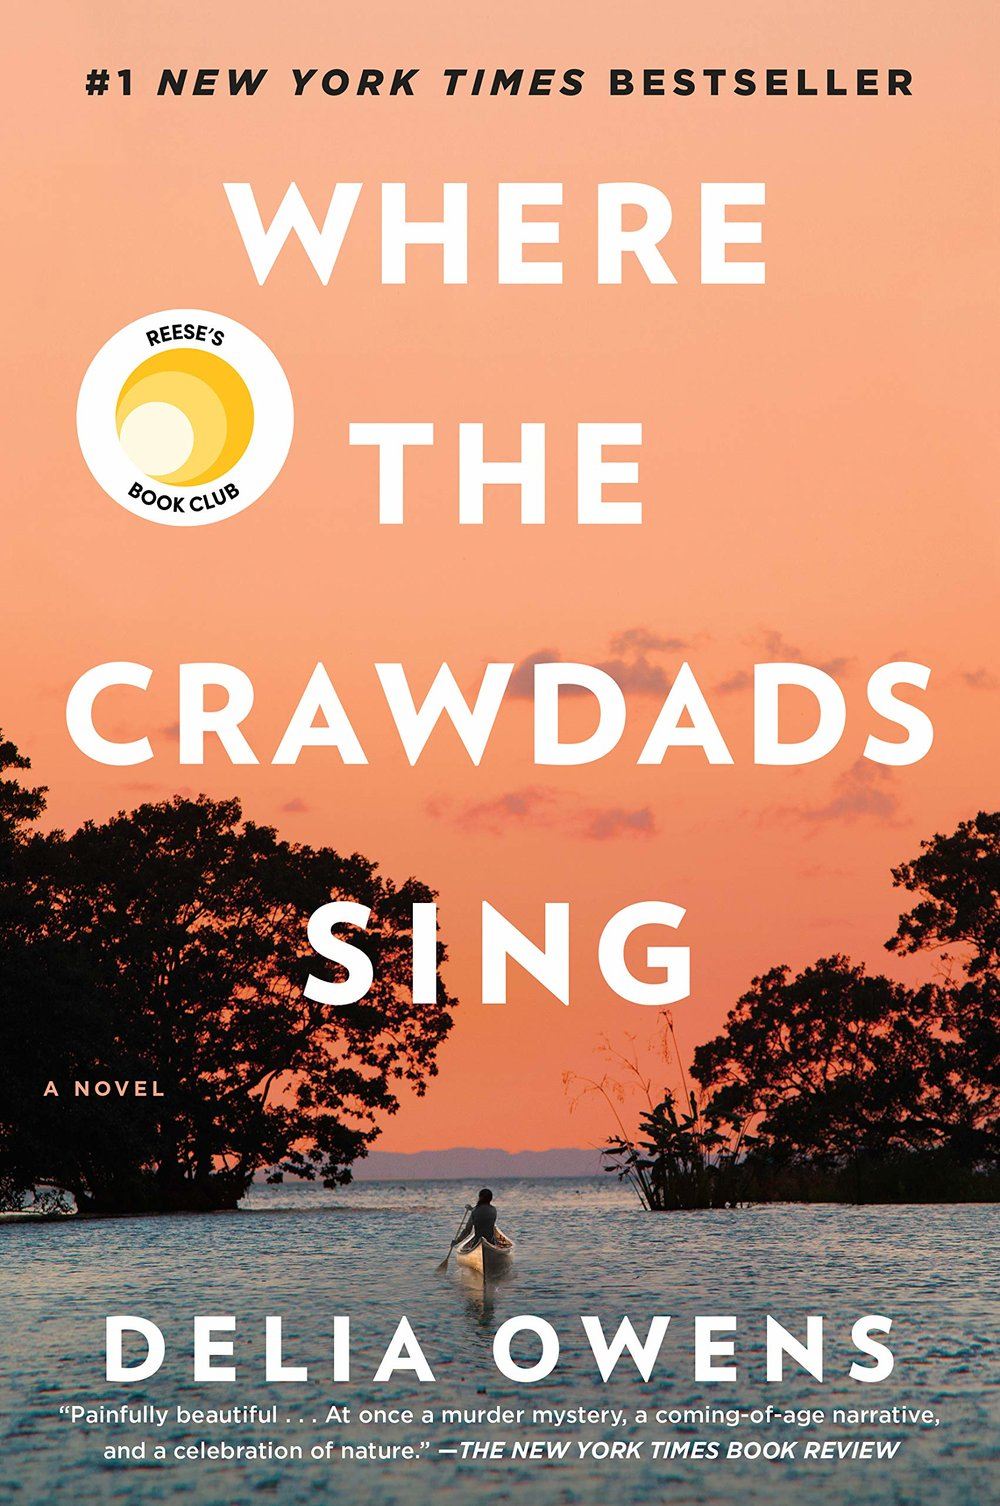 """Where the Crawdads Sing by Delia Owens - Personal Book Club Pick of the MonthRating: 5/5Where the Crawdads Sing was one of the highest praised books last year and I'm so glad I finally read it! The quote on the cover describes this book perfectly, """"Painfully beautiful…At once a murder mystery, a coming-of-age narrative, and a celebration of nature."""" Set in the North Carolina marshes of the 1950s we watch the life of Kya Clark grow up from abandoned child desperate for love and companionship and how that leads her outside the swamps and brings her in deep, personal, and honest relationships but also to those who use her lack of social awareness against her. Crawdads is not the fastest read, but I promise you will love every word because of it sheer literary beauty. Owens makes it so easy to visualize the marsh and even Kya herself — you'll feel like you're watching a movie in your head. As you get near the end you'll be very satisfied, but its the last two pages that are the real treat and will leave you looking like this emoji 😱.Is it a must read? YES YES YES!"""